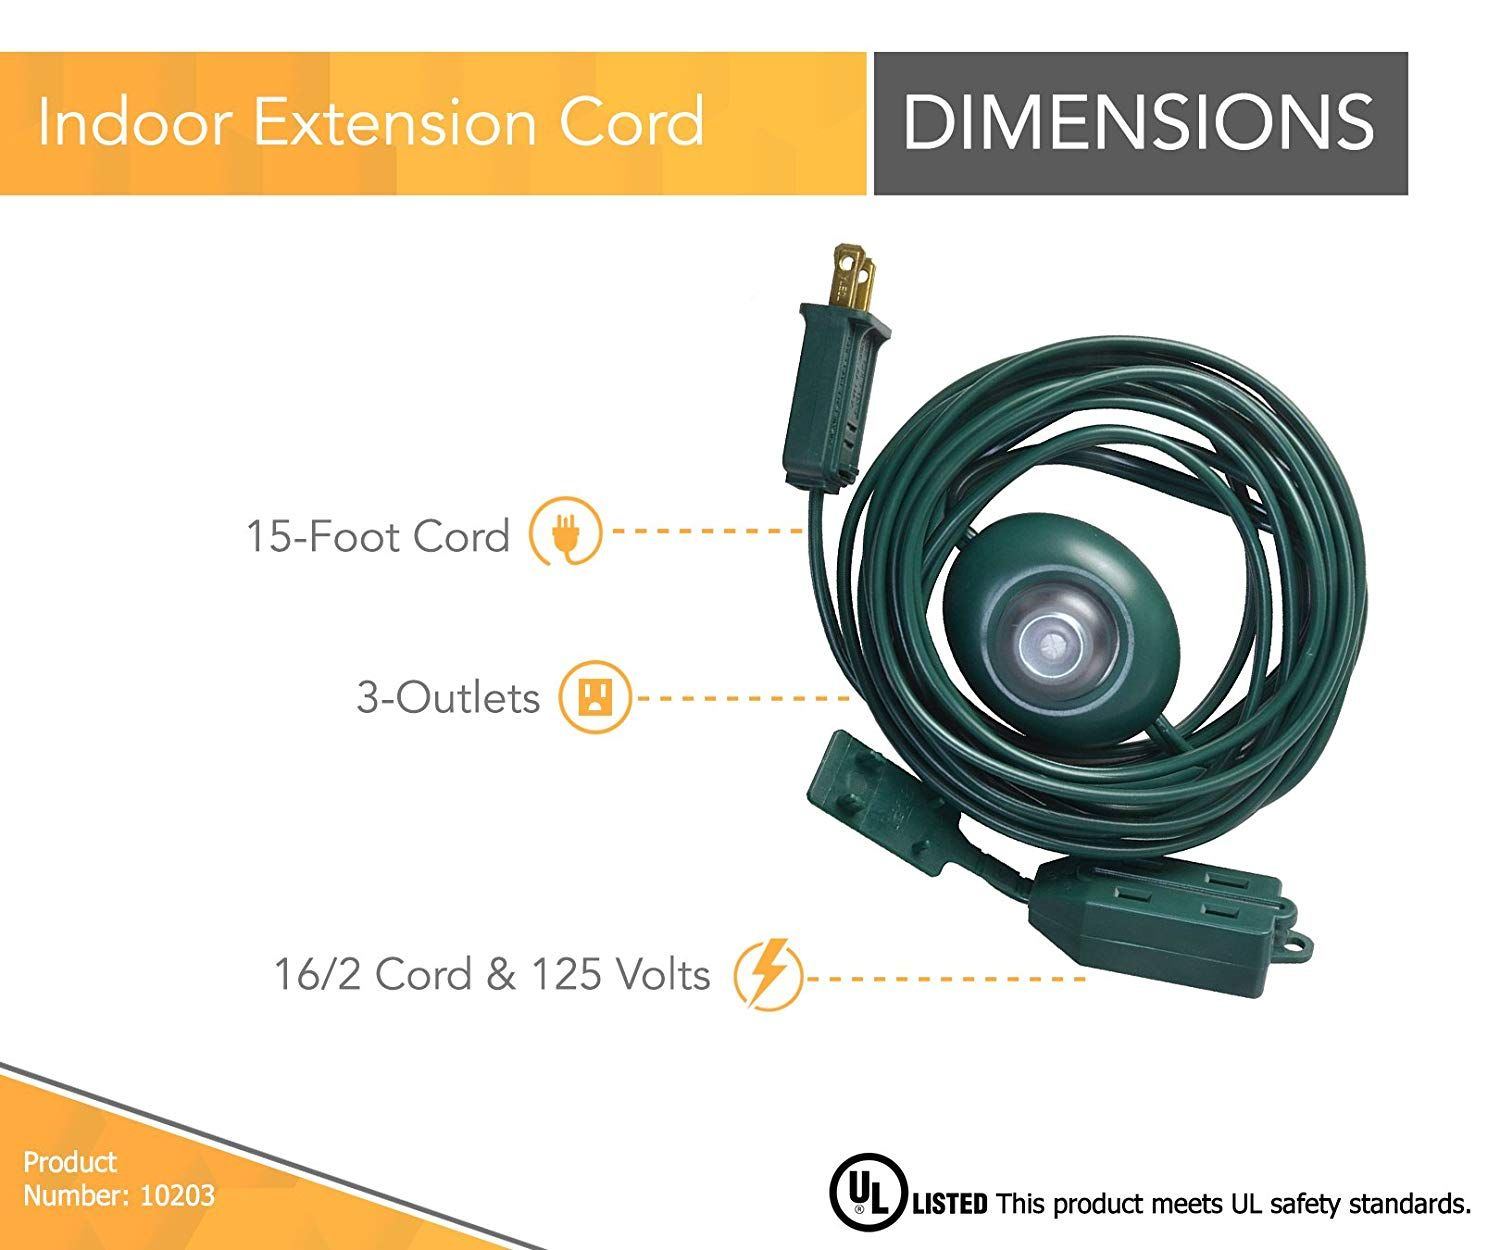 Woods Indoor Extension Cord With Lighted Foot Switch And 3 Outlets 15ft Green Visit The Picture Link Even More Information This Is An Affil With Images Christmas Tree